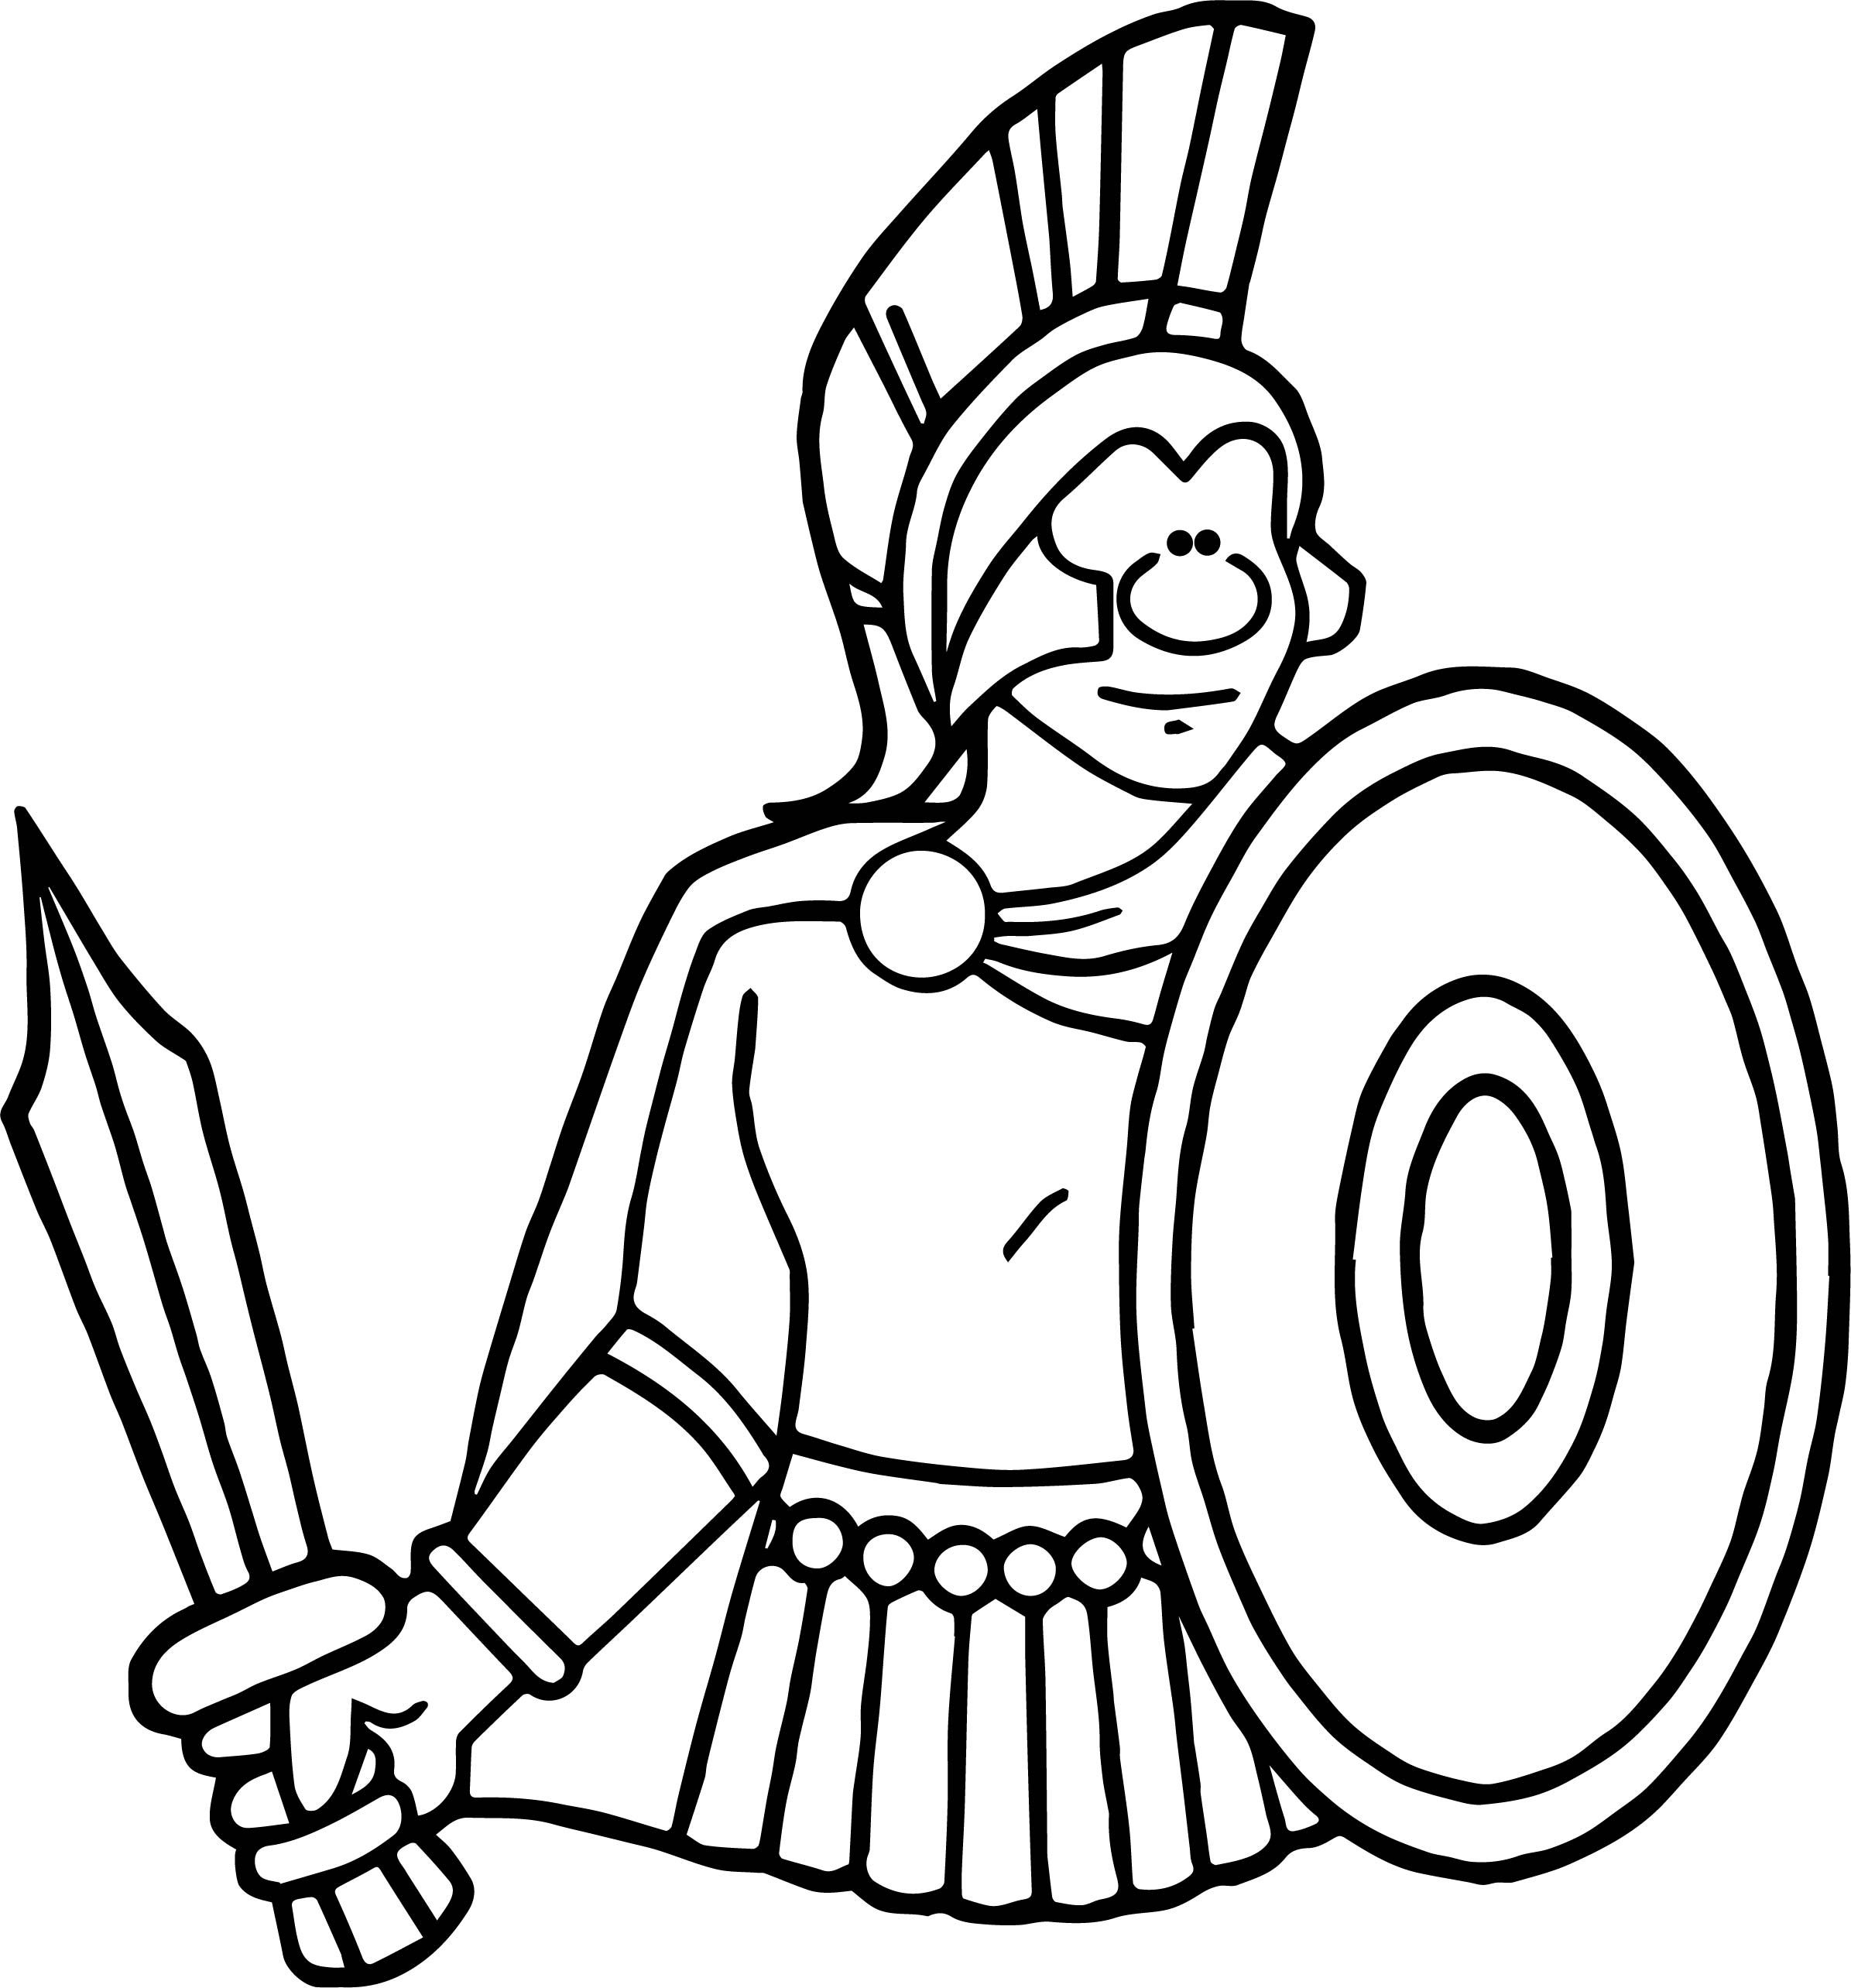 Coloring Msu Pages Spartan 2020 Football Coloring Pages